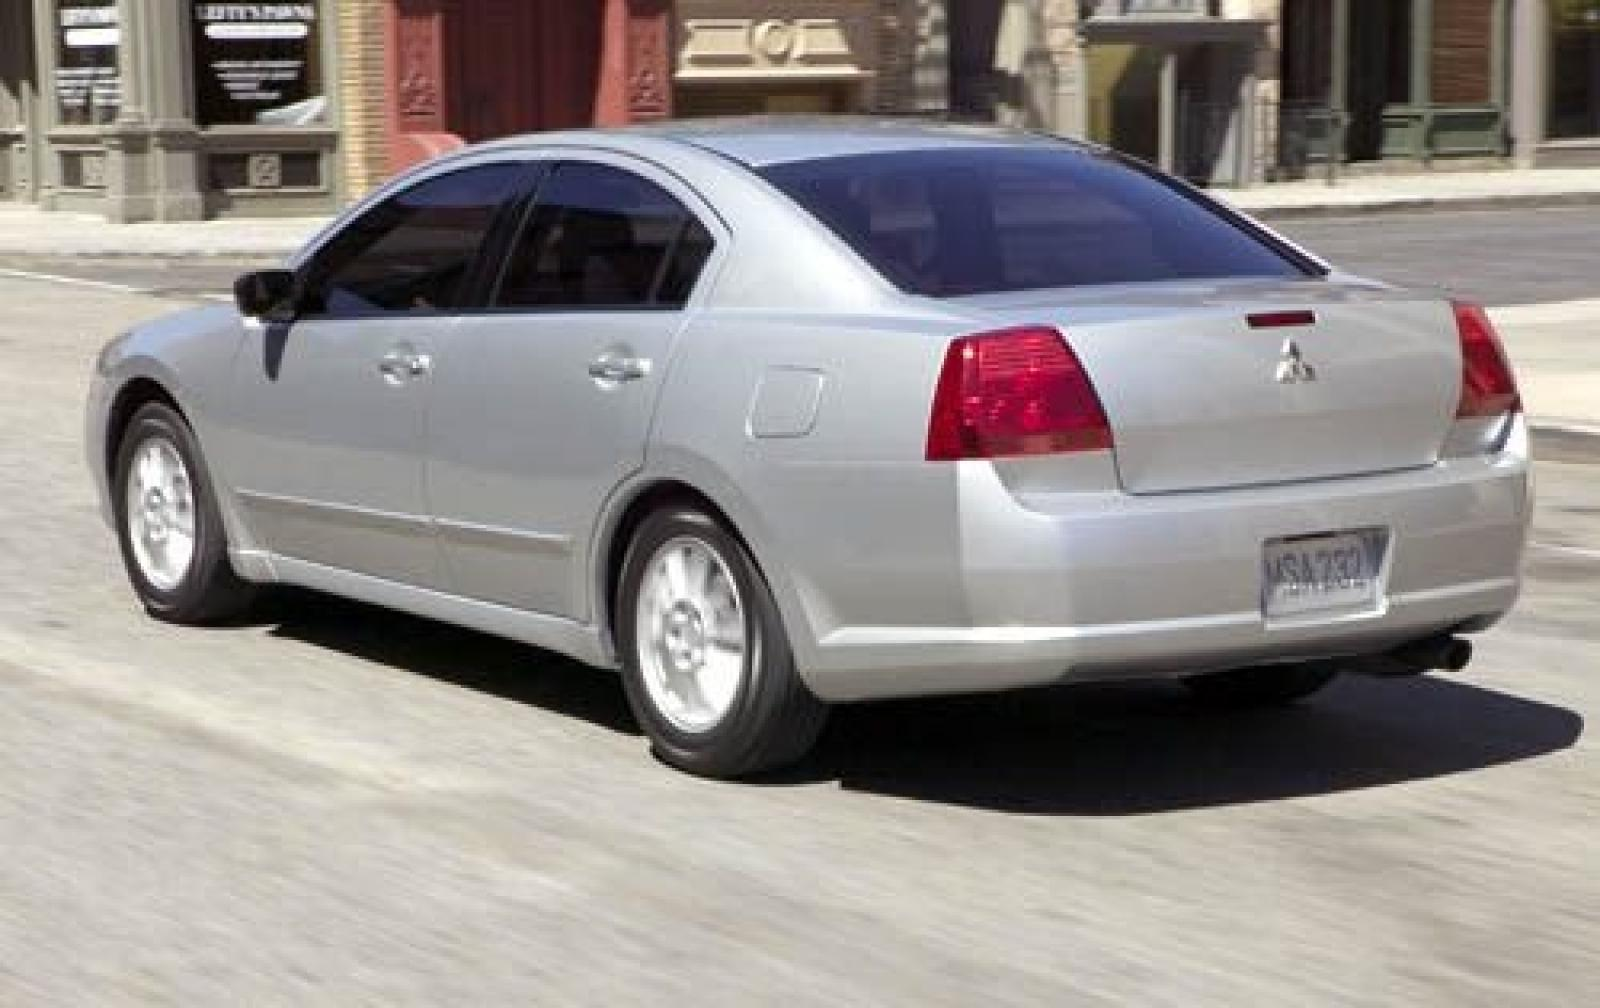 2008 mitsubishi galant information and photos zombiedrive. Black Bedroom Furniture Sets. Home Design Ideas